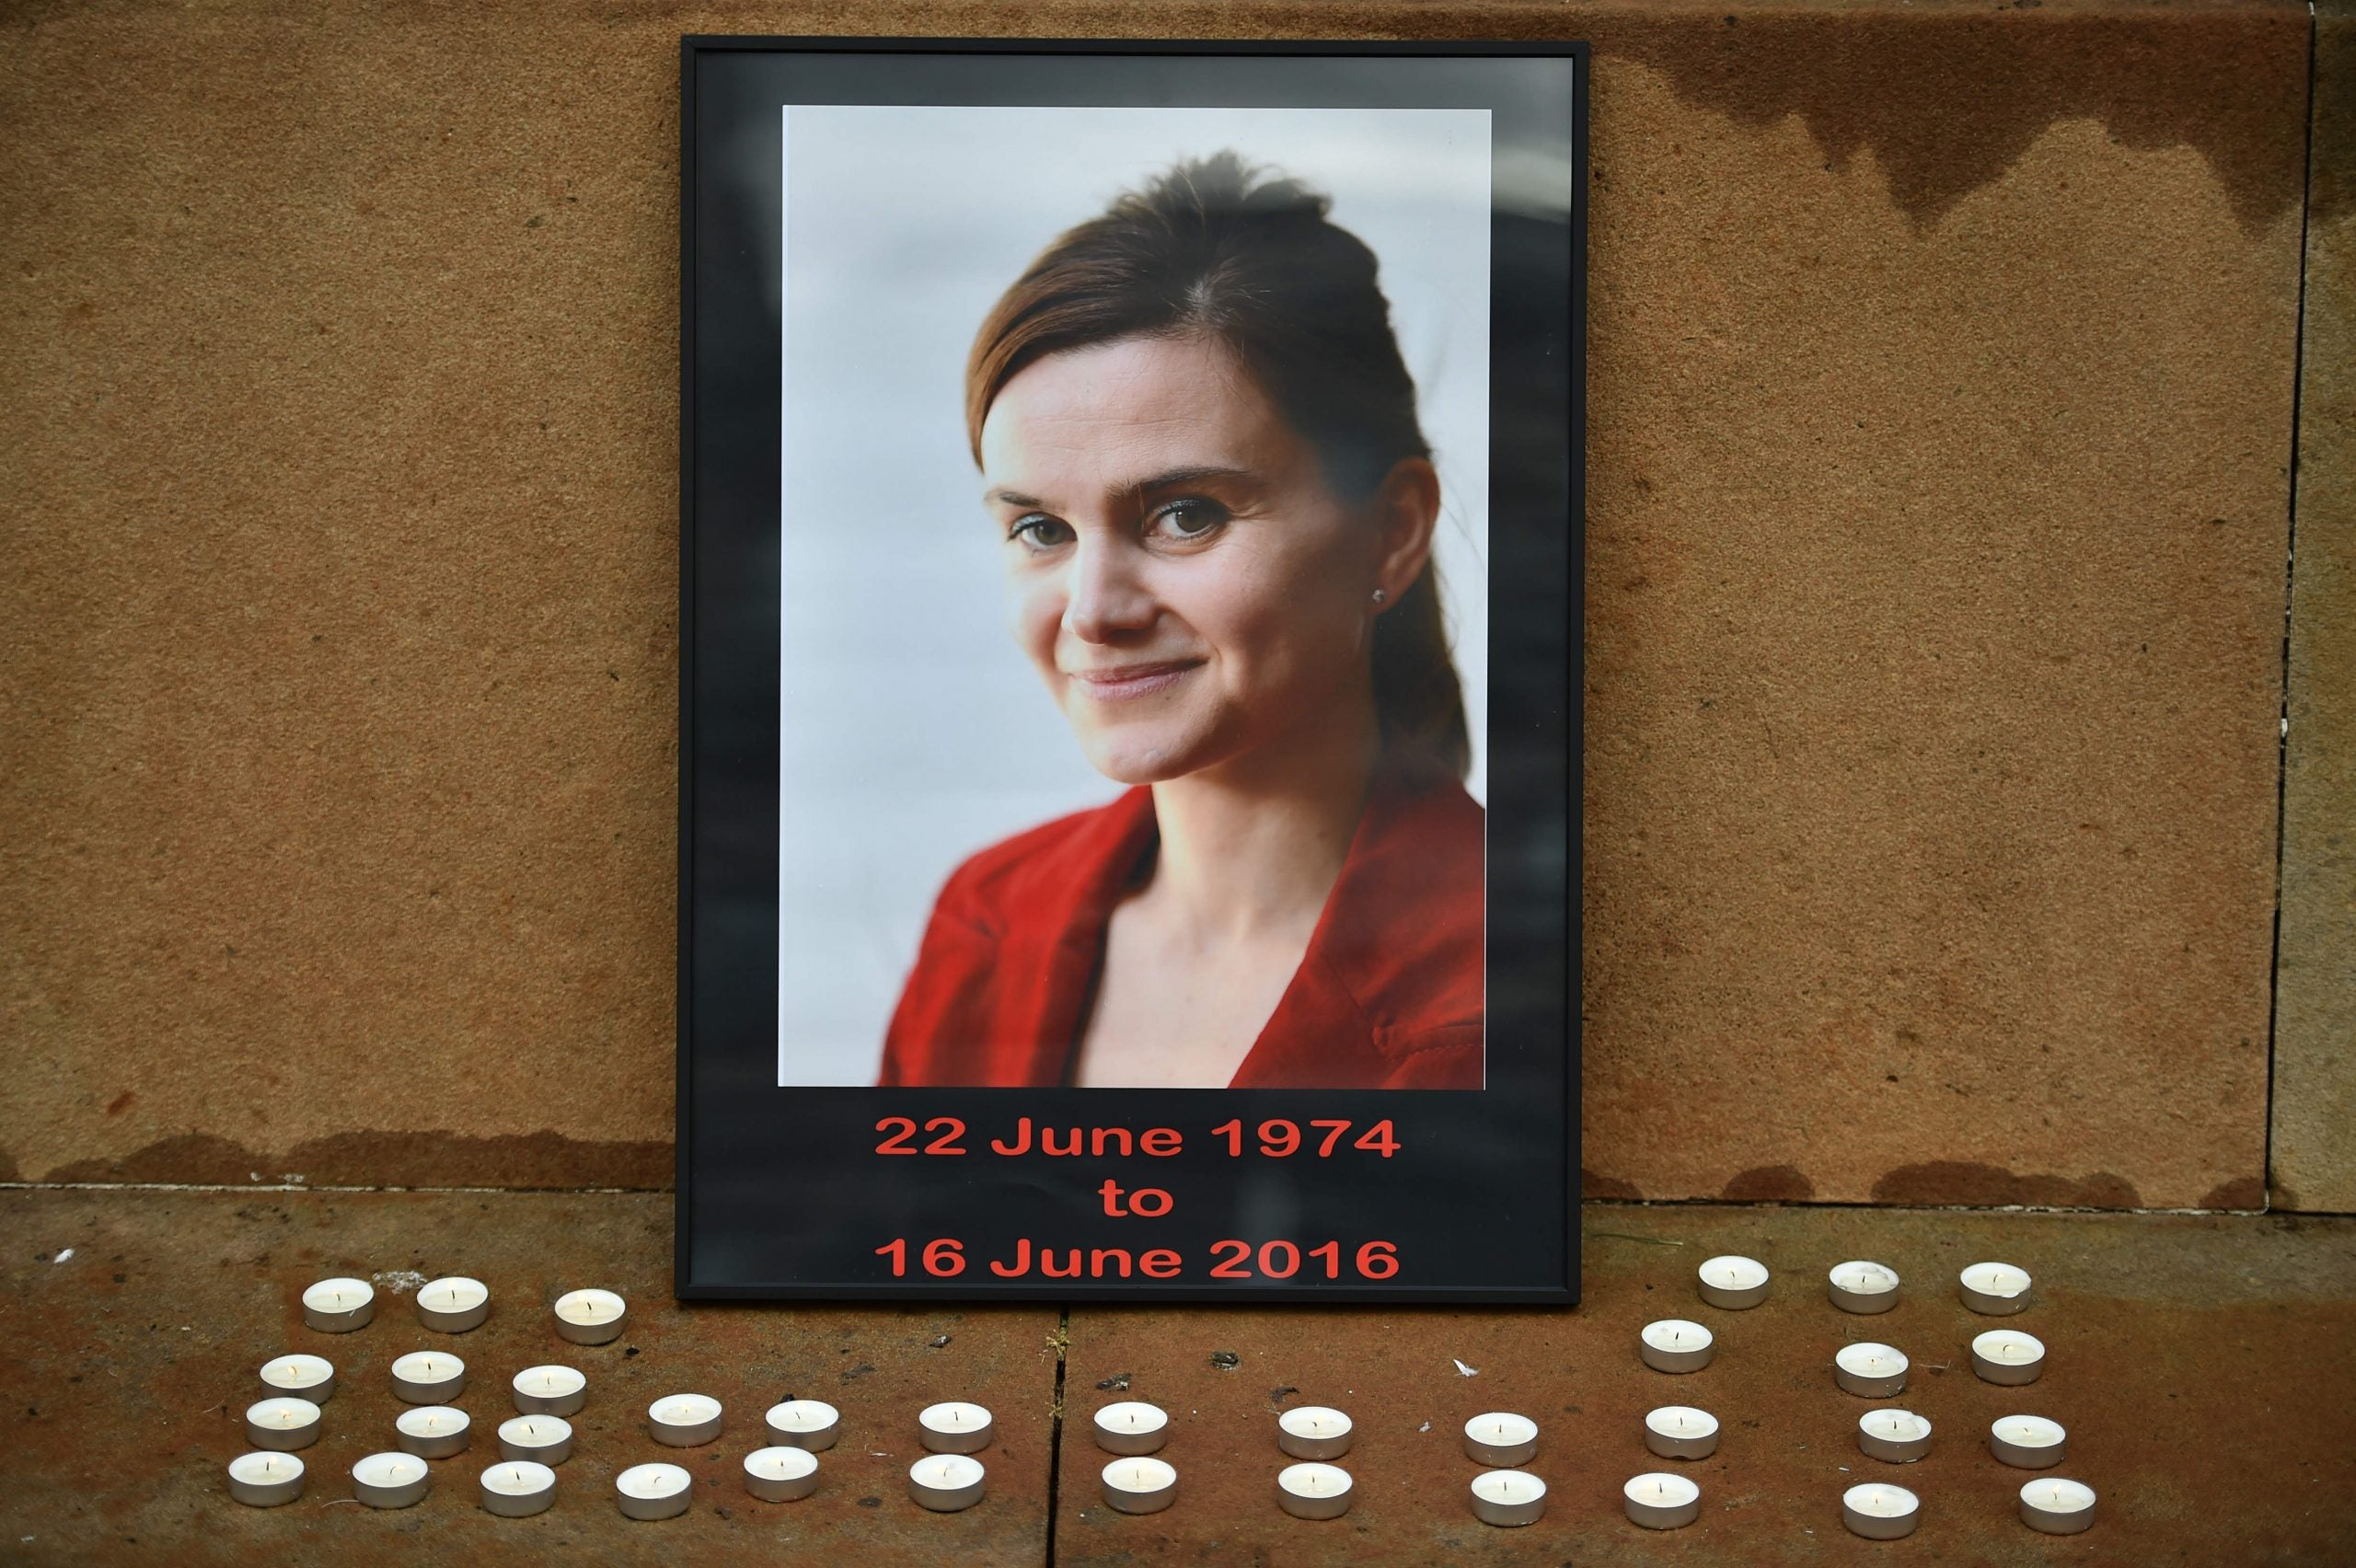 People have been so kind to MPs since Jo Cox died – but it's just another reminder that she's gone